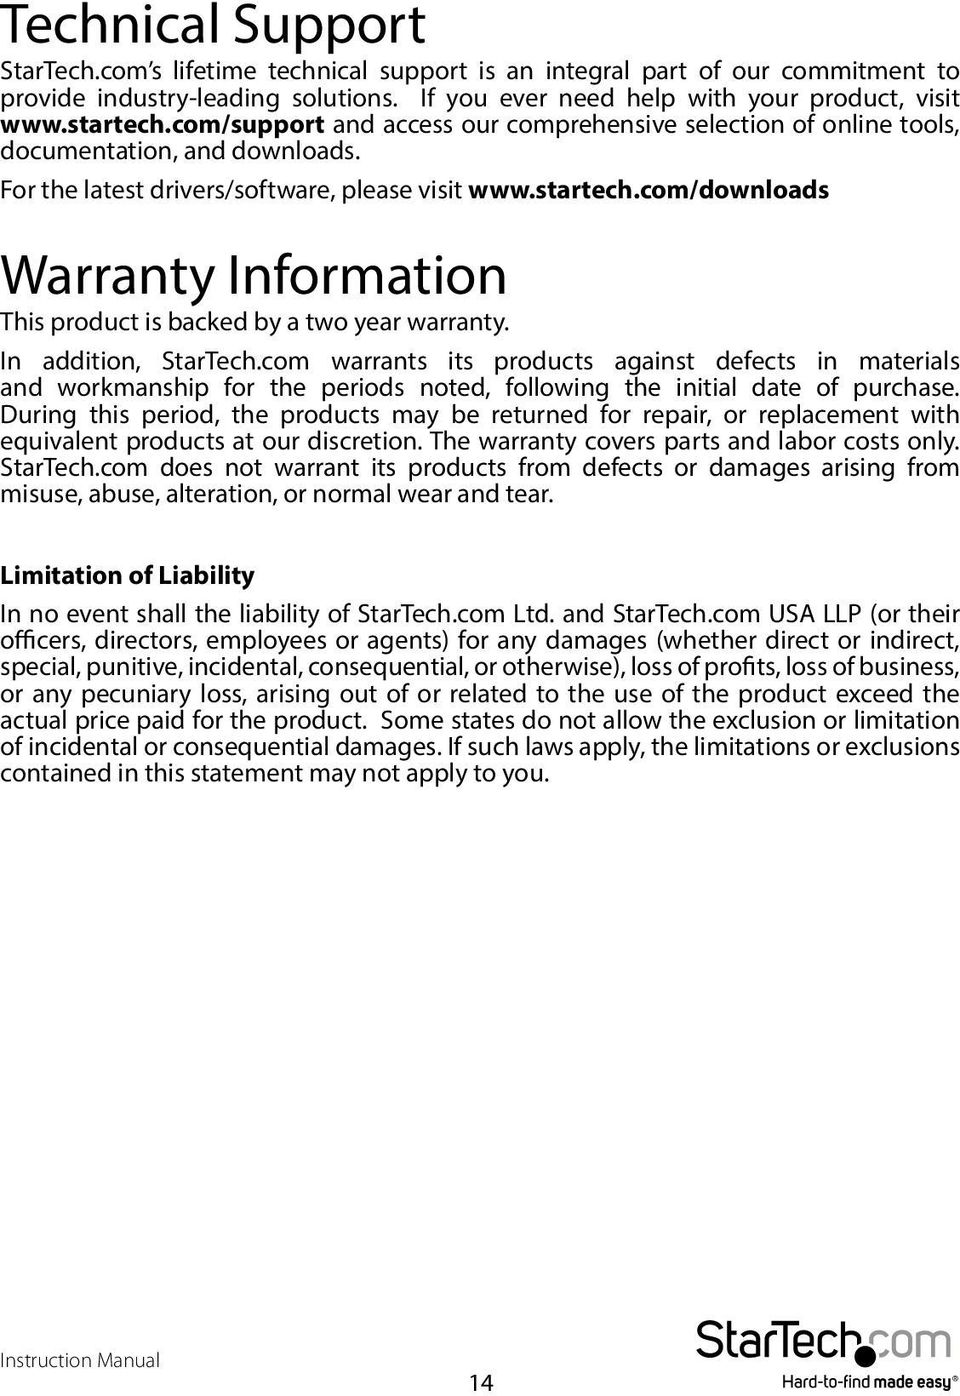 com/downloads Warranty Information This product is backed by a two year warranty. In addition, StarTech.